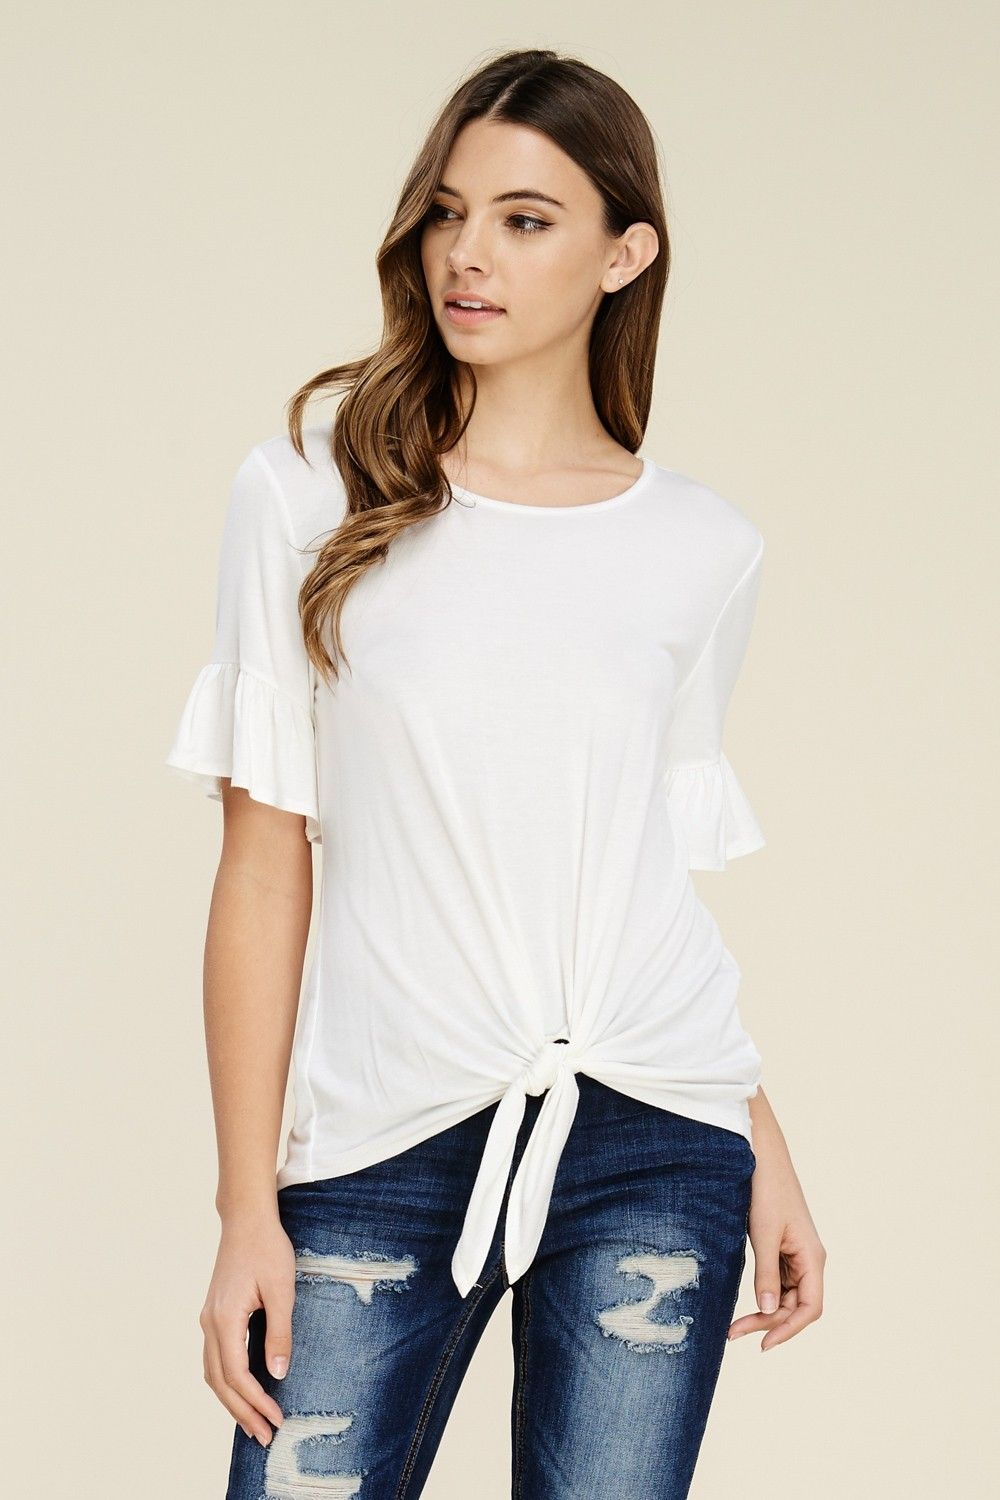 a247523124a74b Short Sleeve Front Tie Top Style  T1200 Knit top featuring solid ...